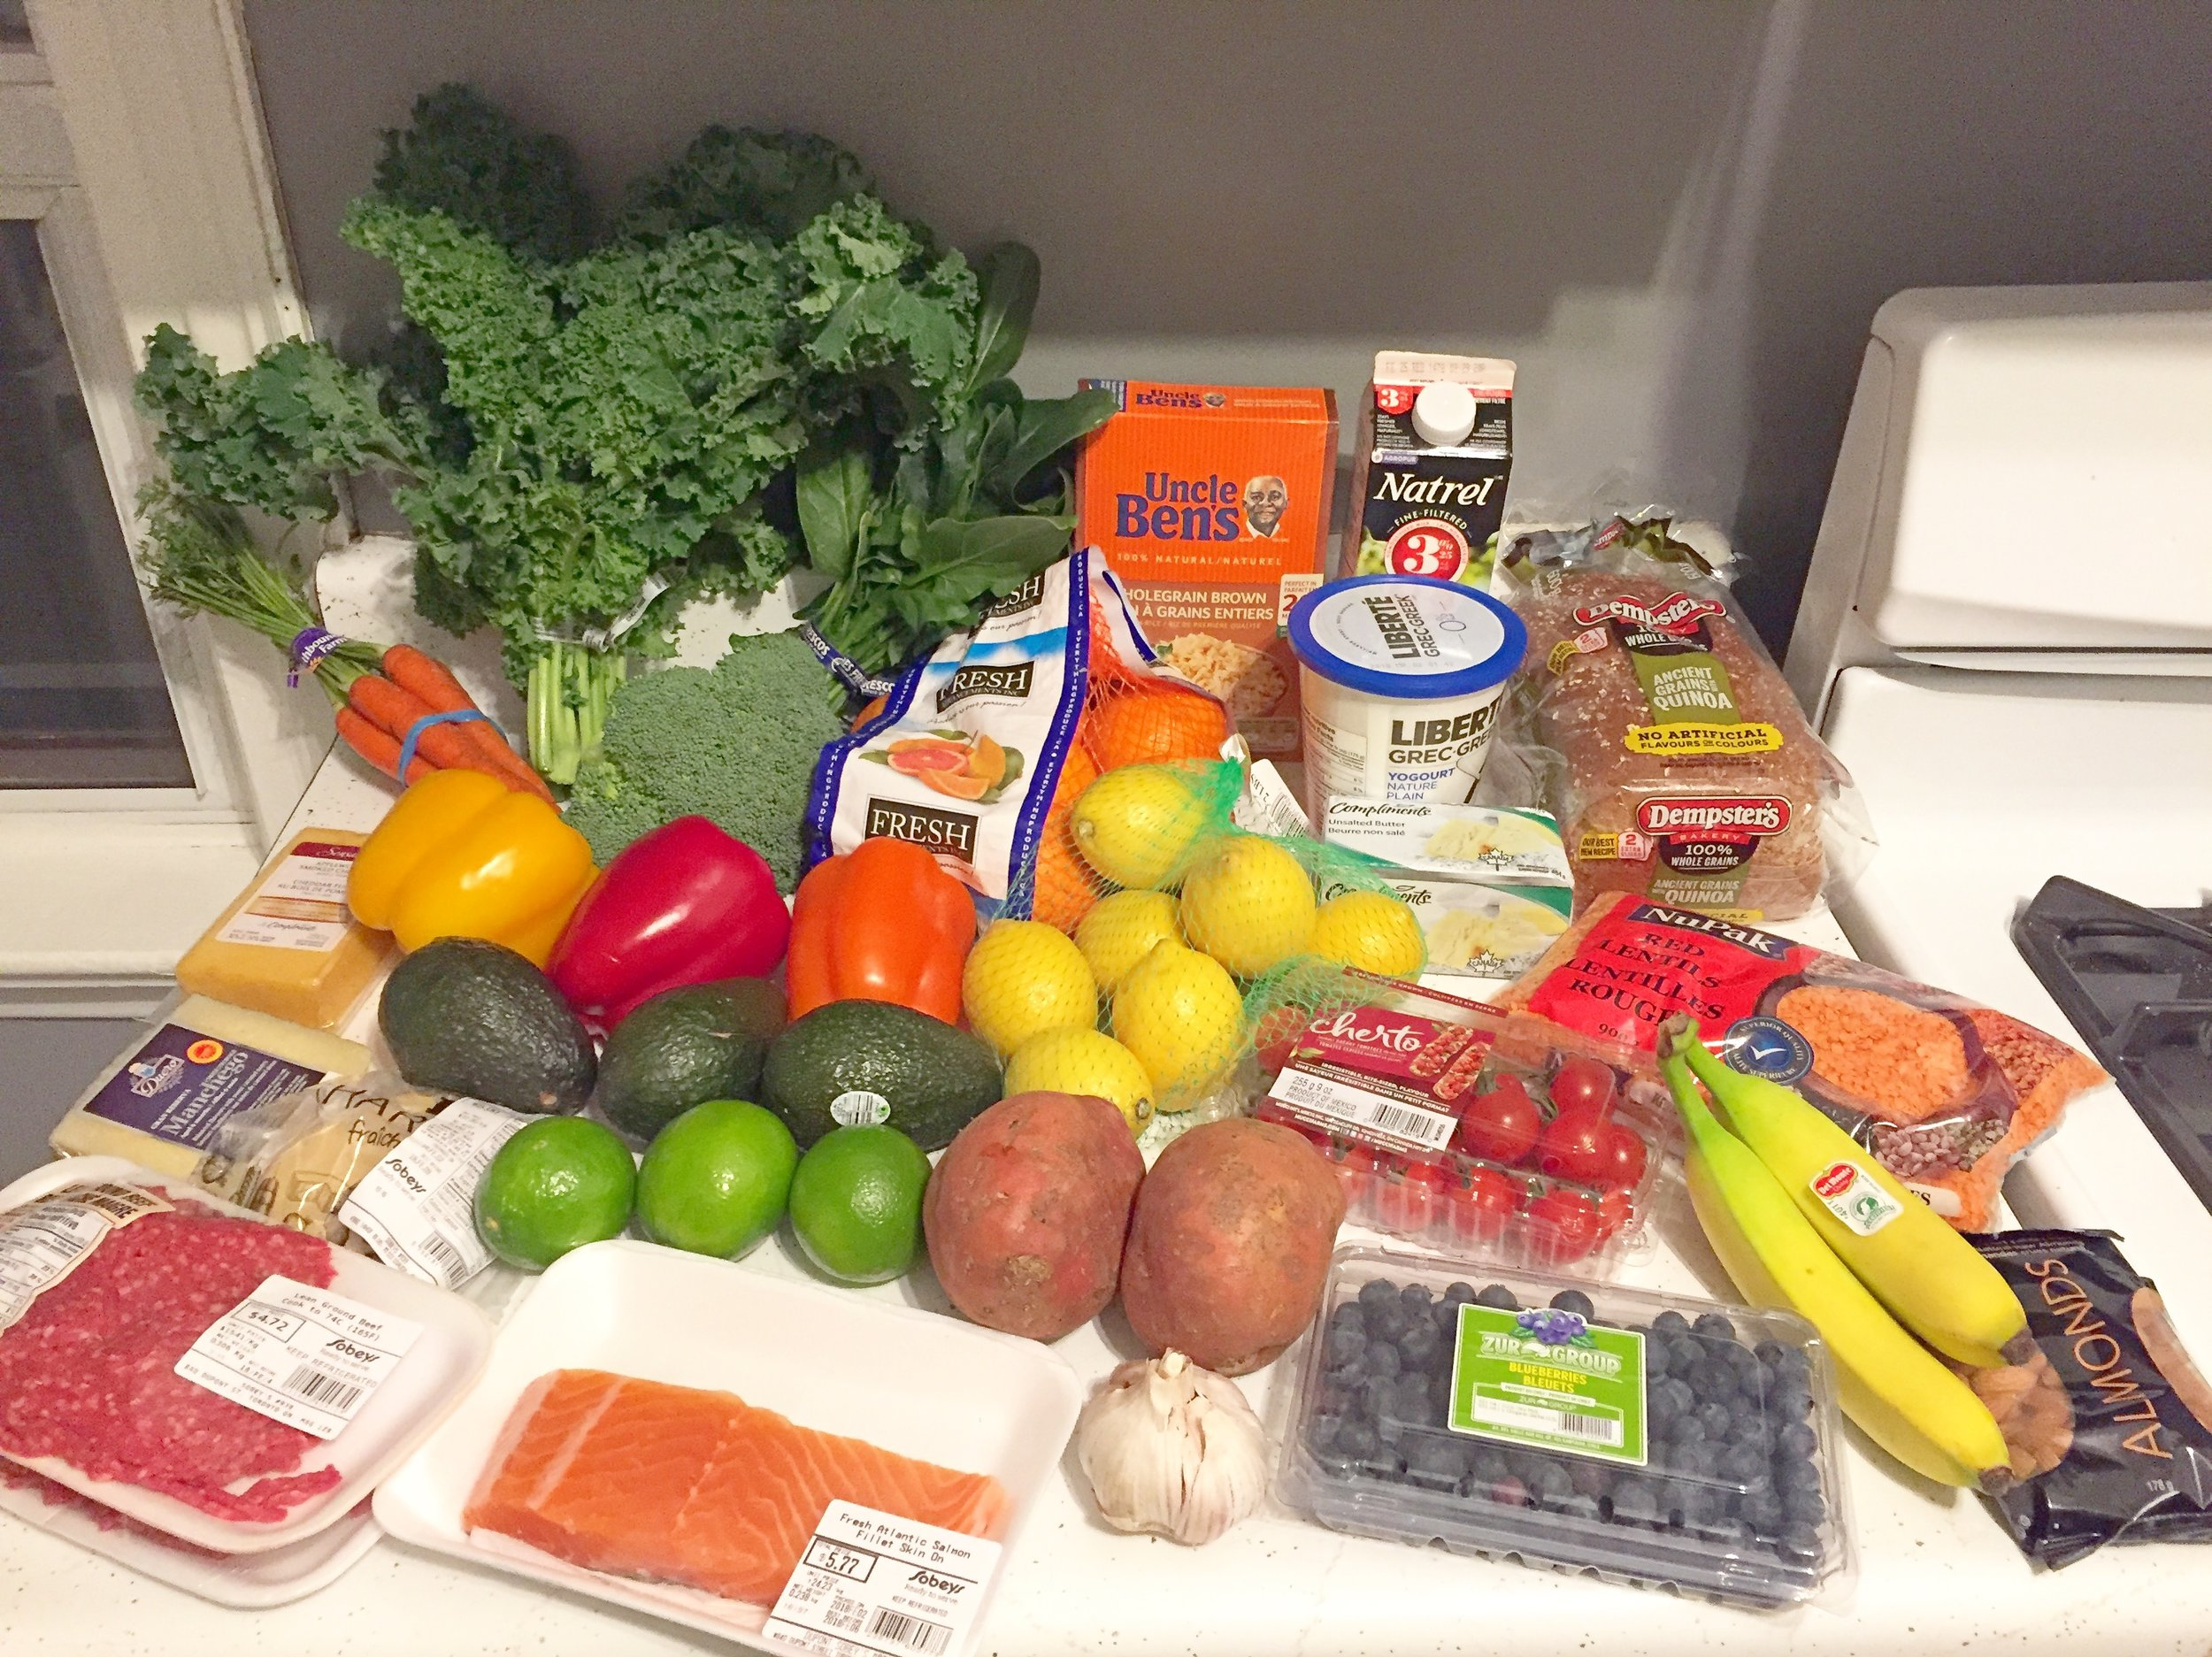 My first grocery shopping haul upon discovering I was pregnant.